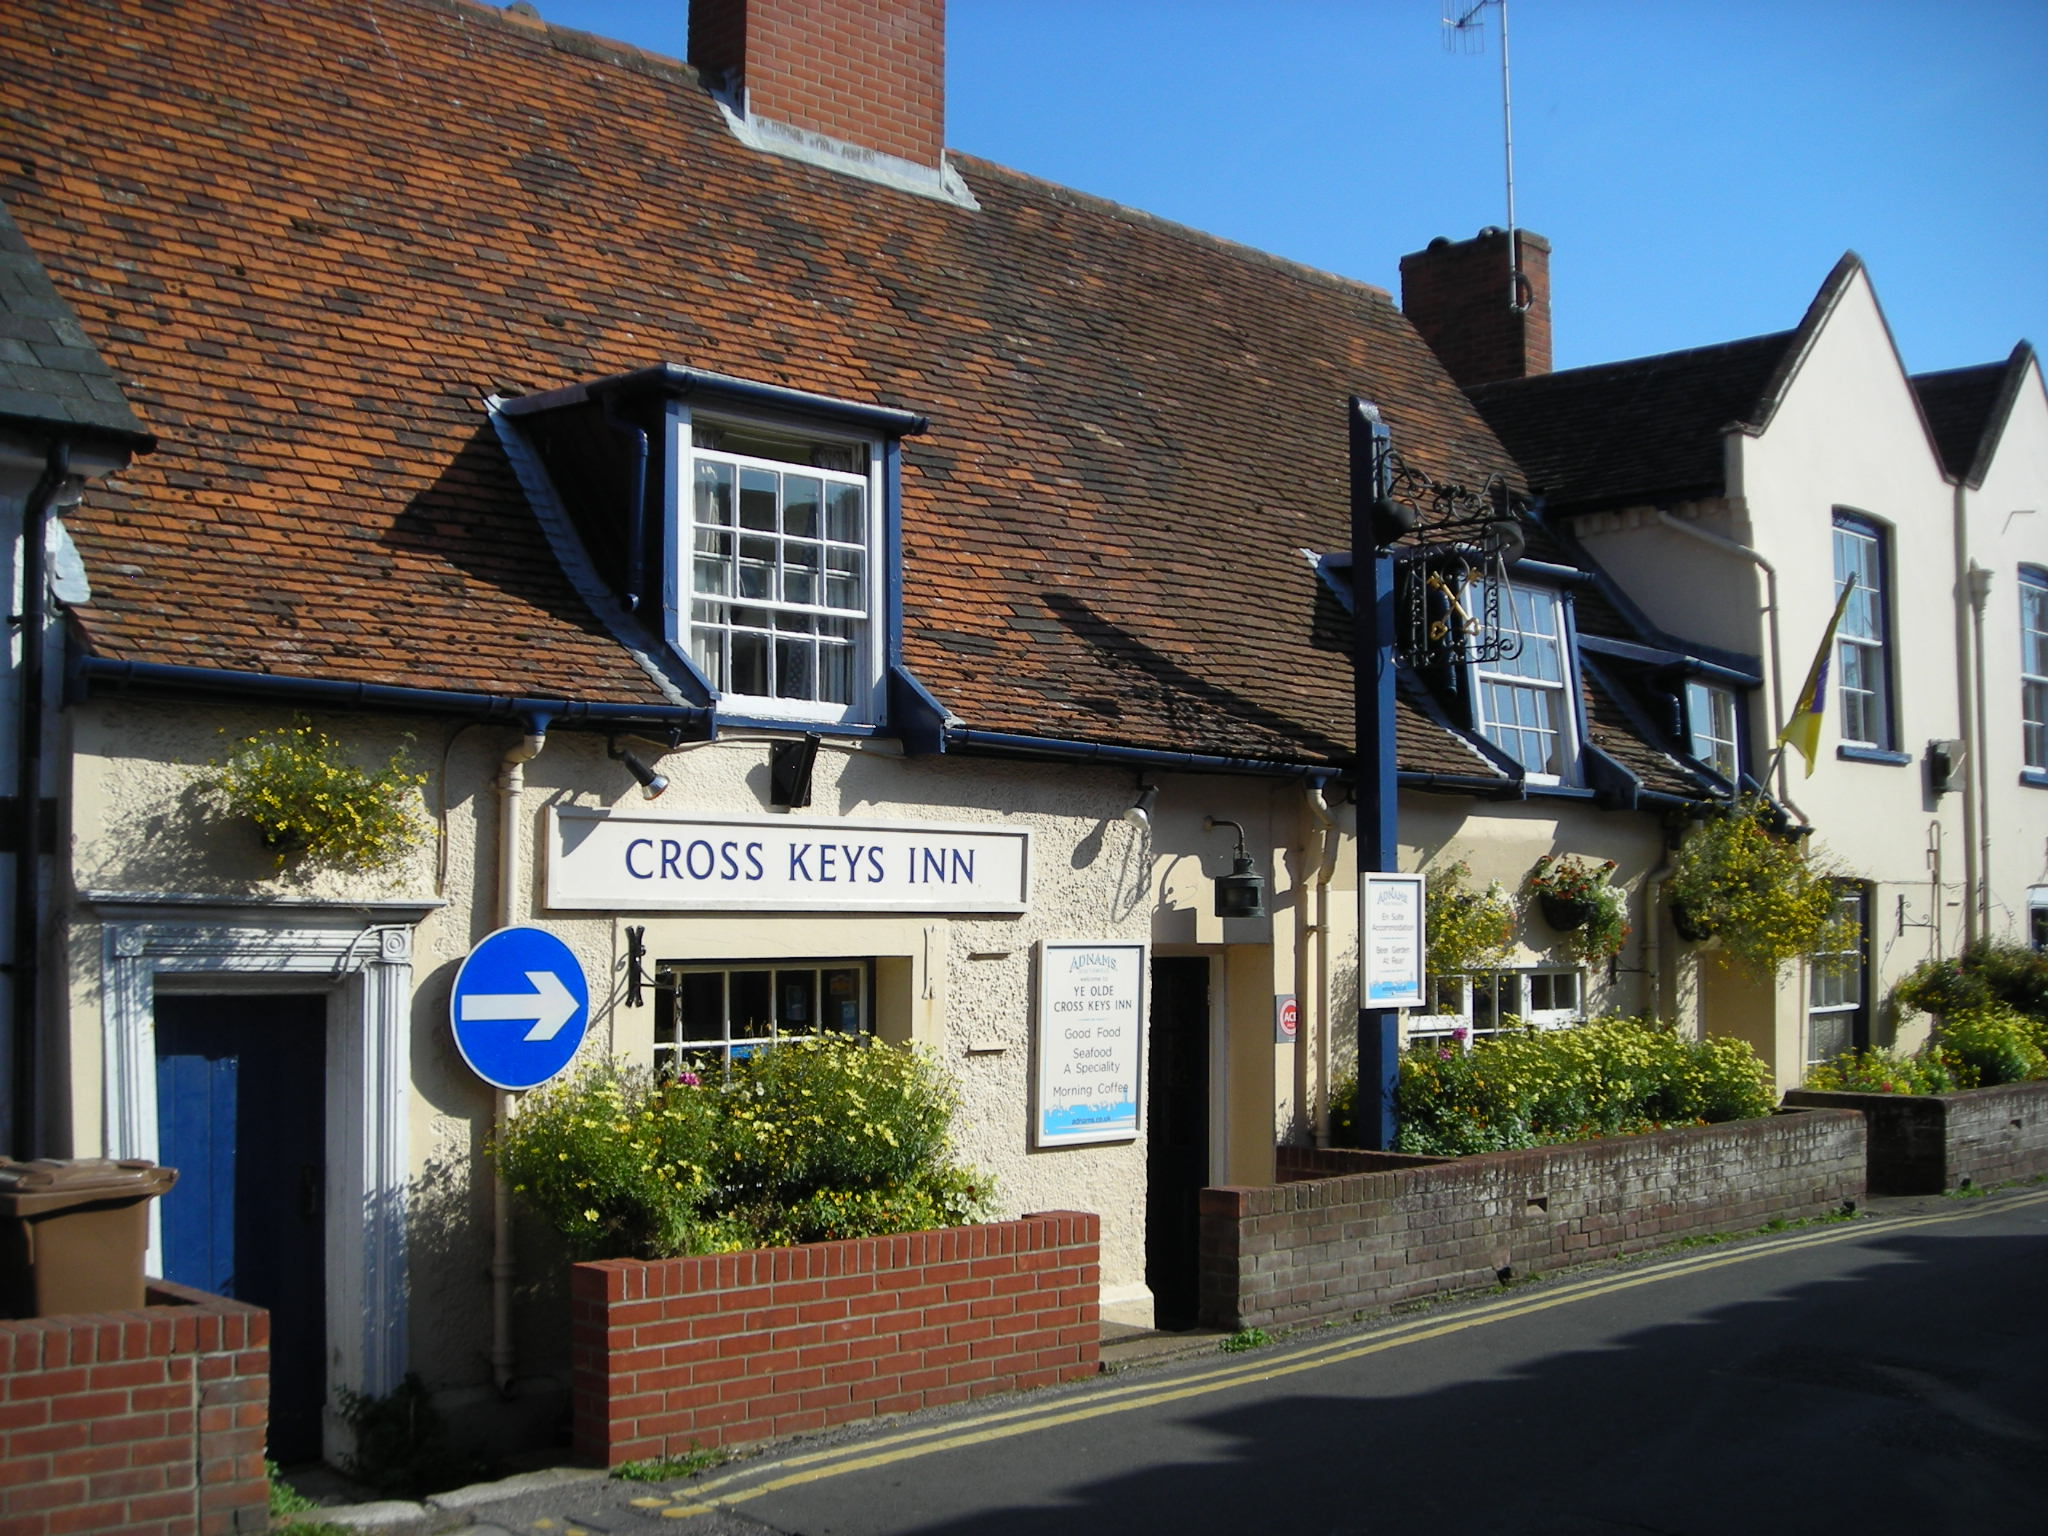 Ye Olde Cross Keys Inn